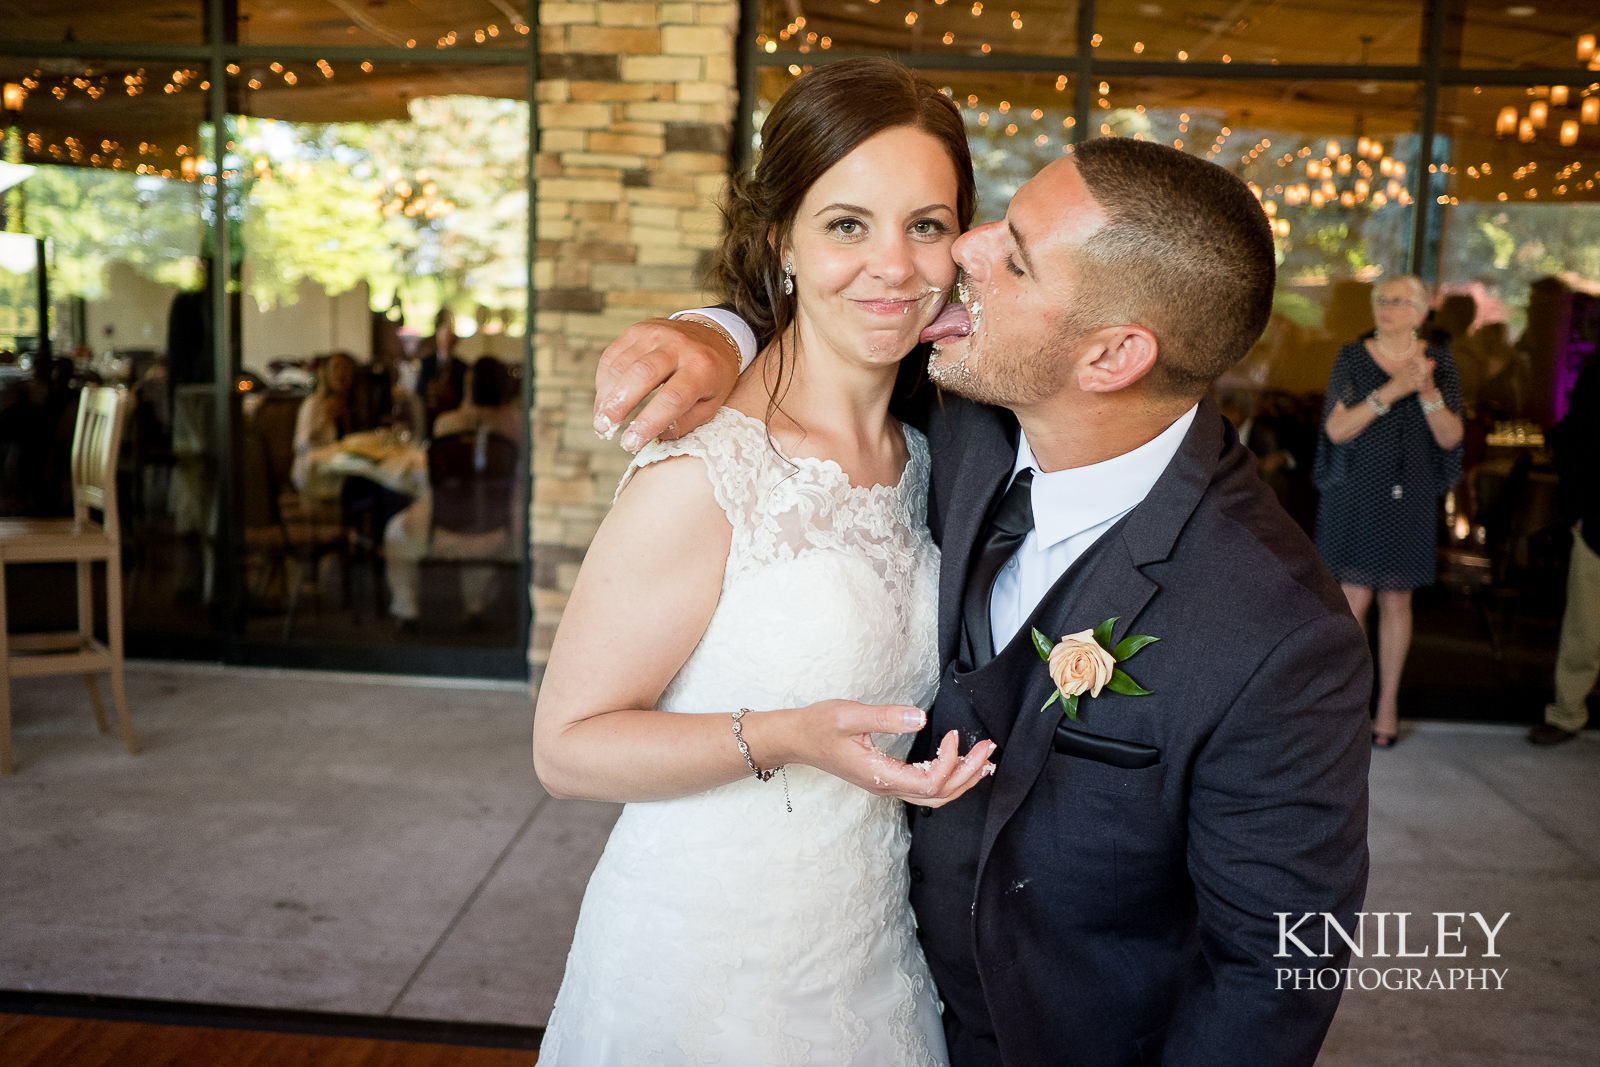 105 - Ravenwood Golf Club wedding pictures - Rochester NY - Kniley Photography - XT2A1362.jpg